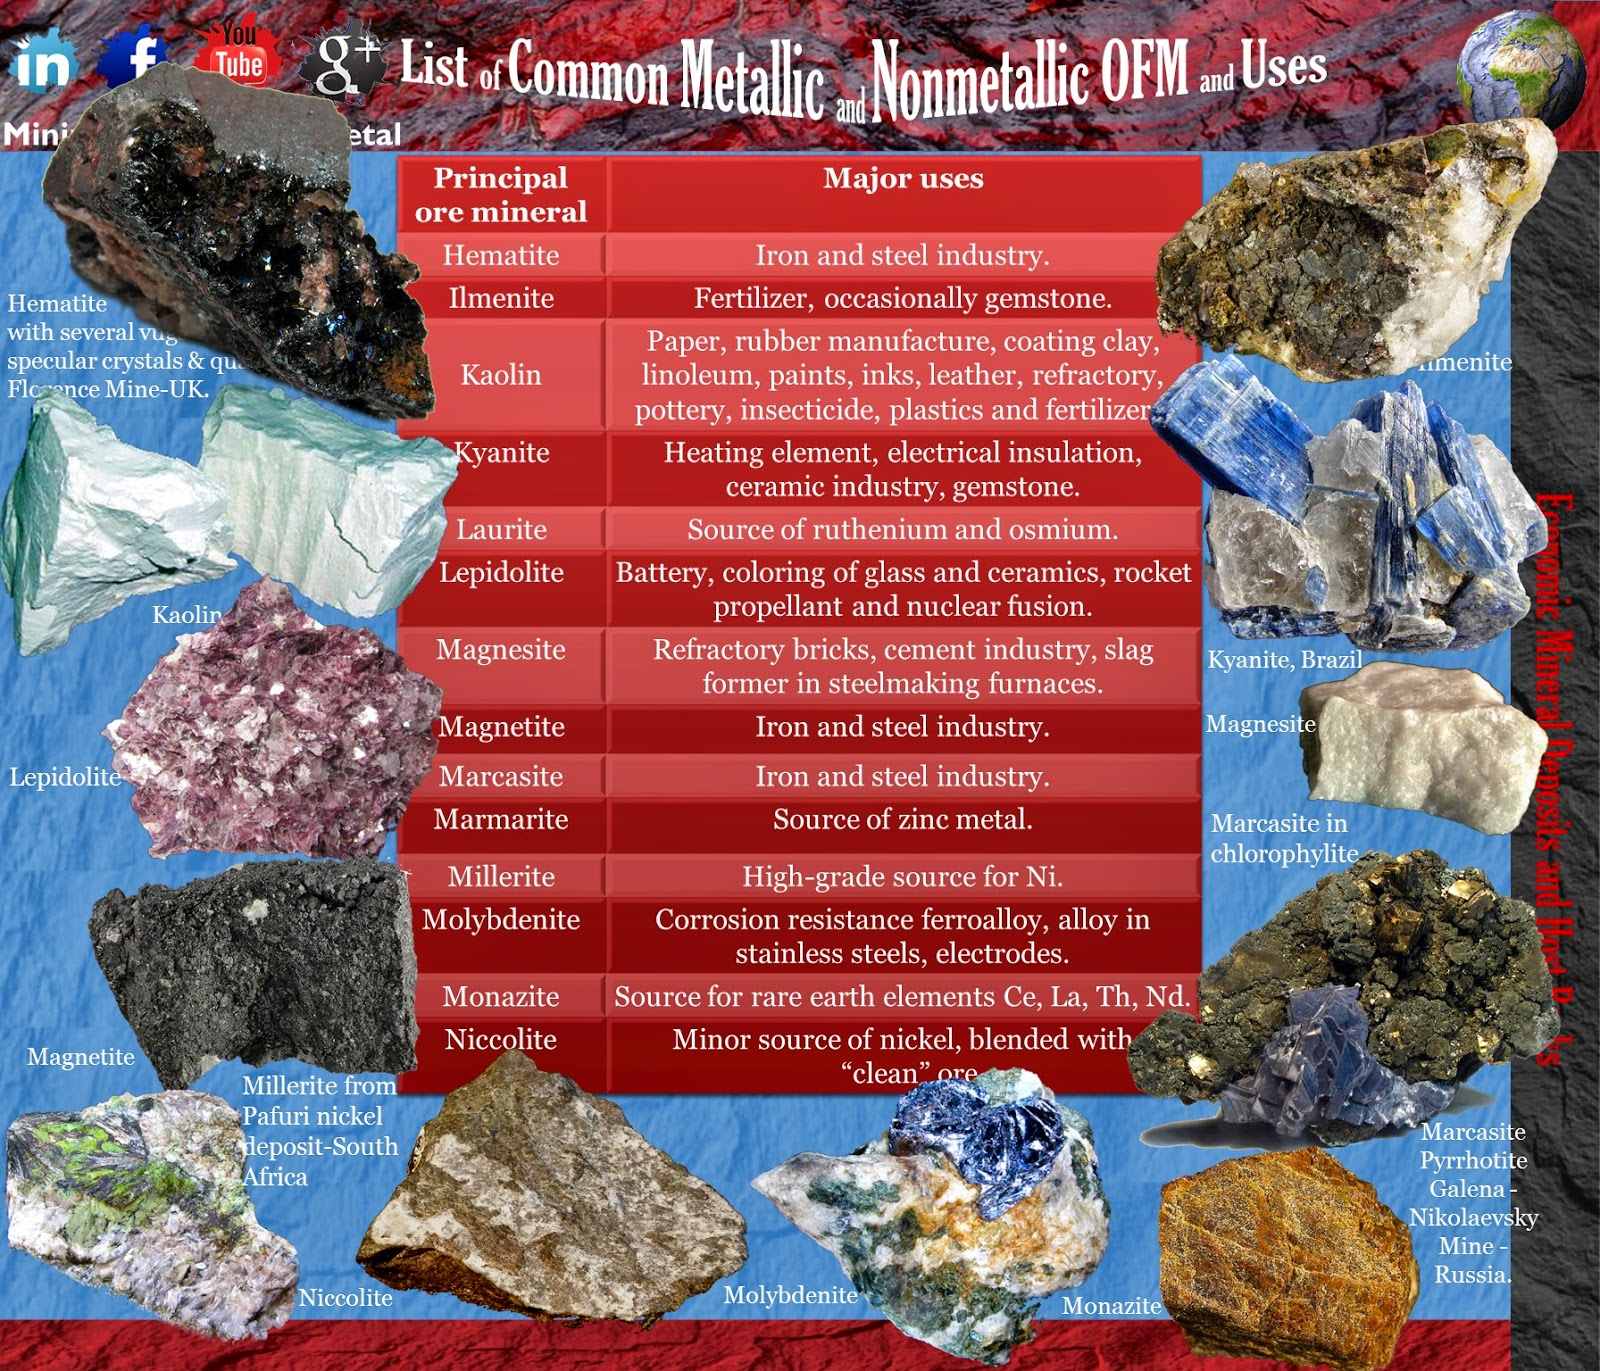 List of Common Metallic and Nonmetallic OFM and Uses 3